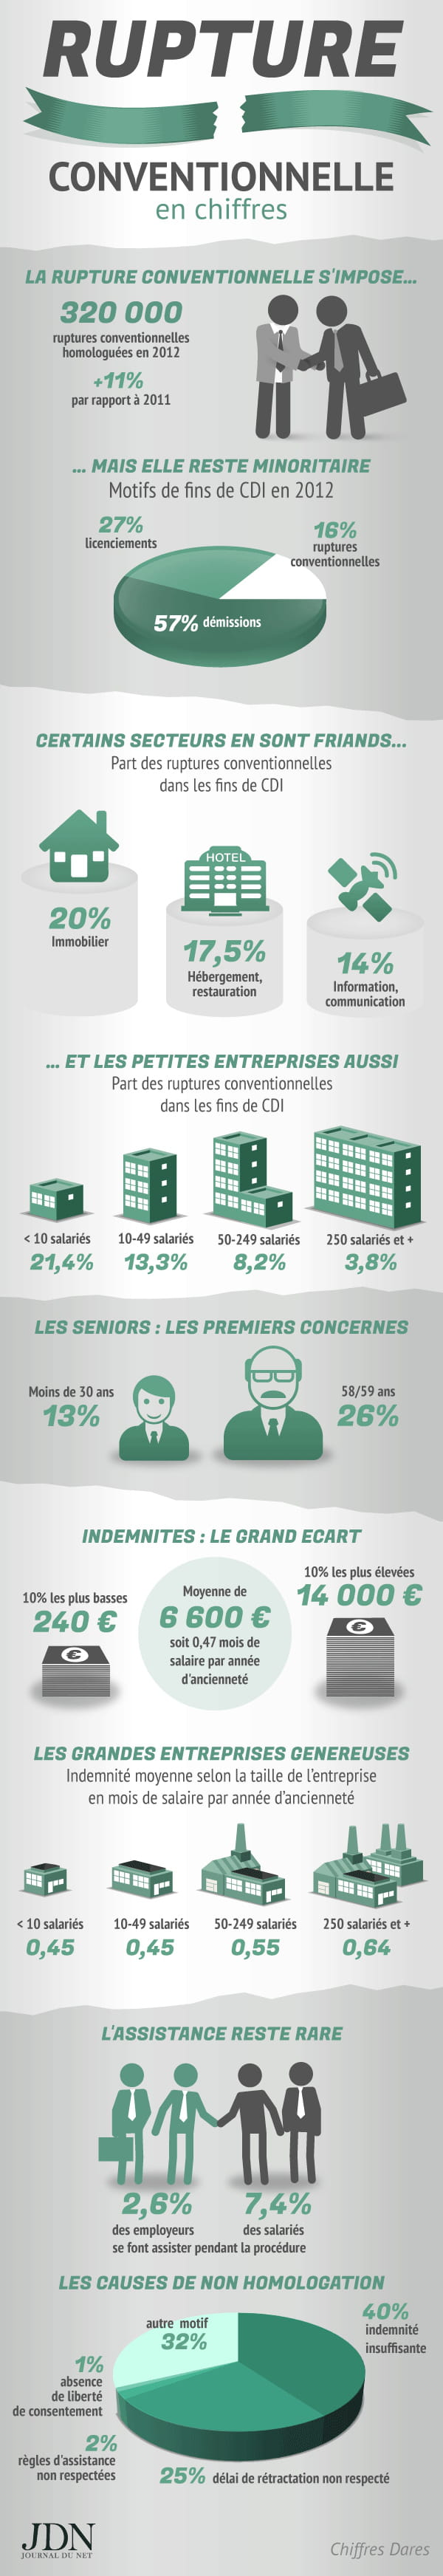 rupture conventionnelle infographie